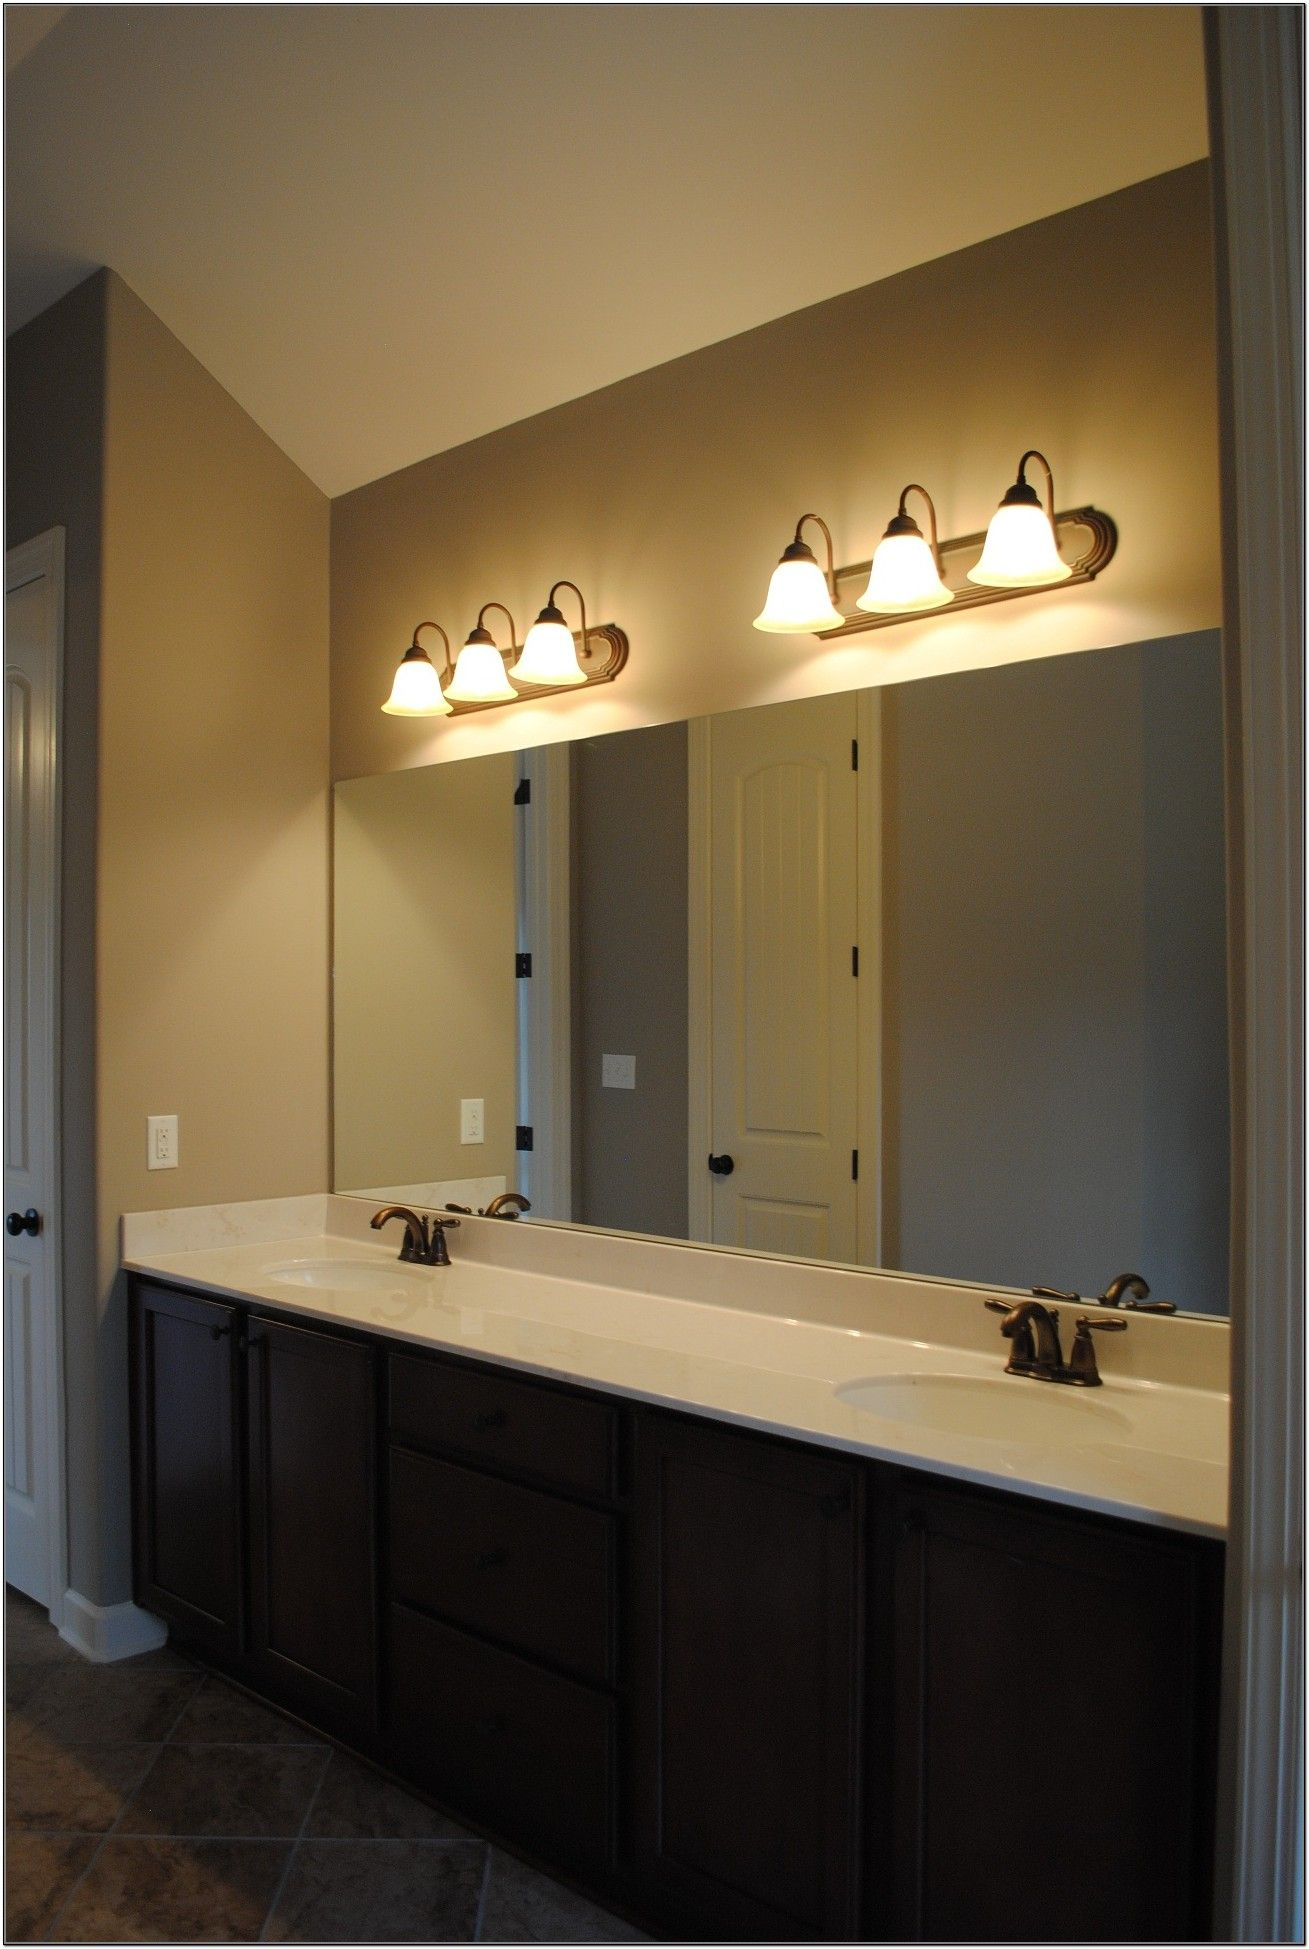 Bathroom lights above mirror pinterdor pinterest bathroom